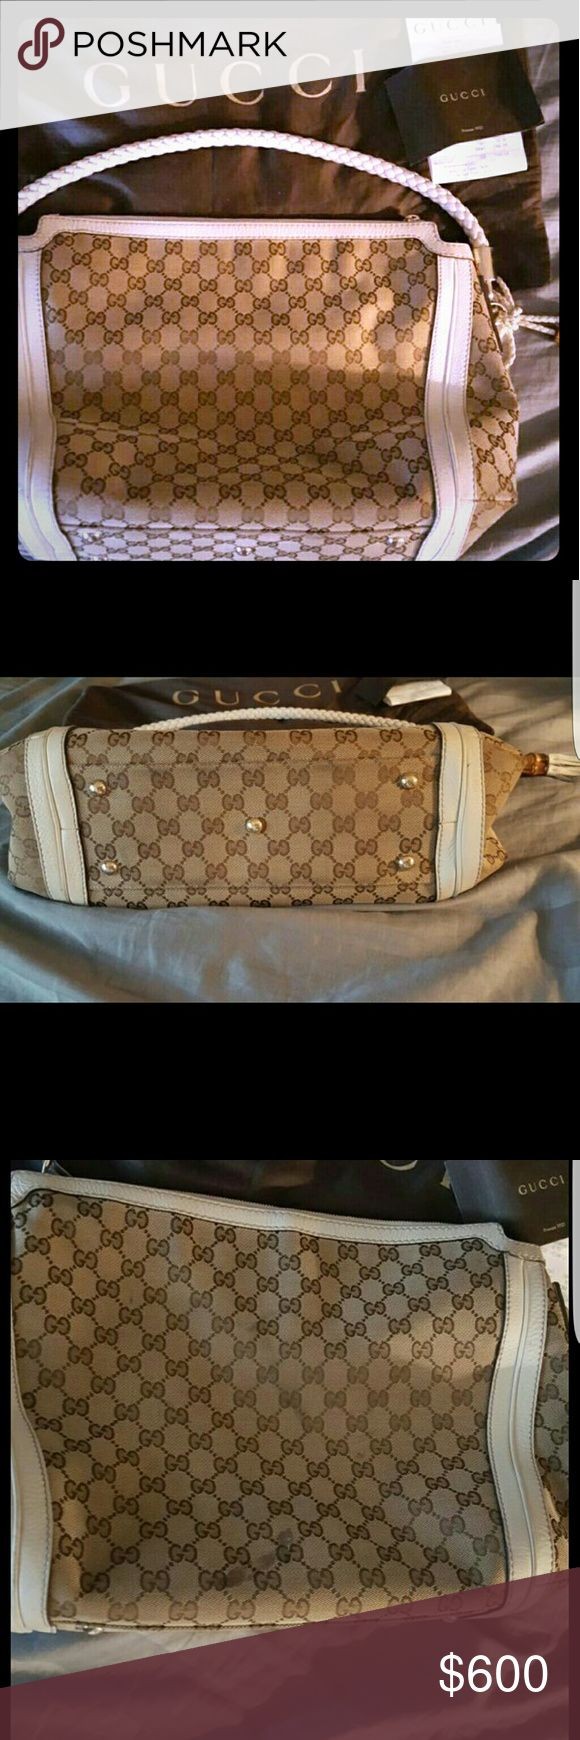 Gucci purse Authentic gucci purse. Has some wear and tear. Inside has pen marks. Can take to cleaners to get cleaned. No trades Gucci Bags Shoulder Bags